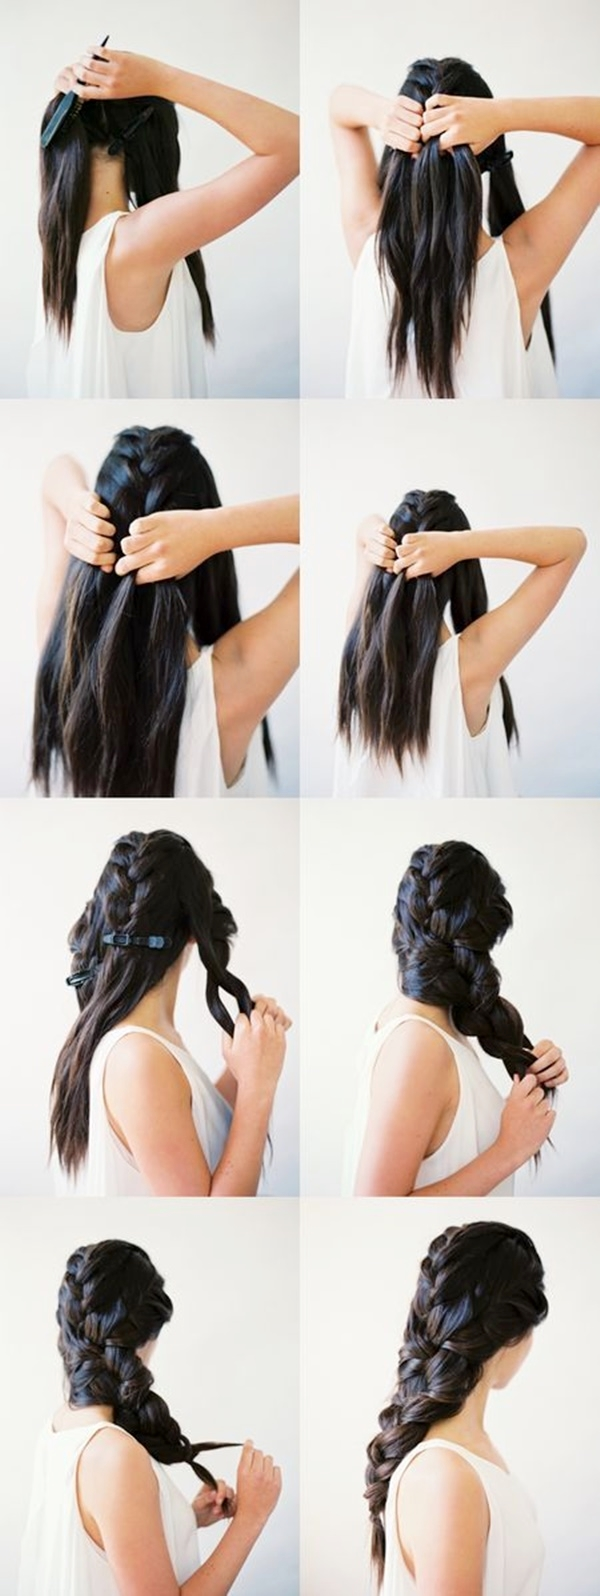 Divide your head into three, namely left, right and middle portions. Firstly, weave a simple braid using the hair from the central part of head. Then make a simple French braid with left and right temple hair as well. Using these braids, make a single thicker authentic braid to suit your intelligent professional look.